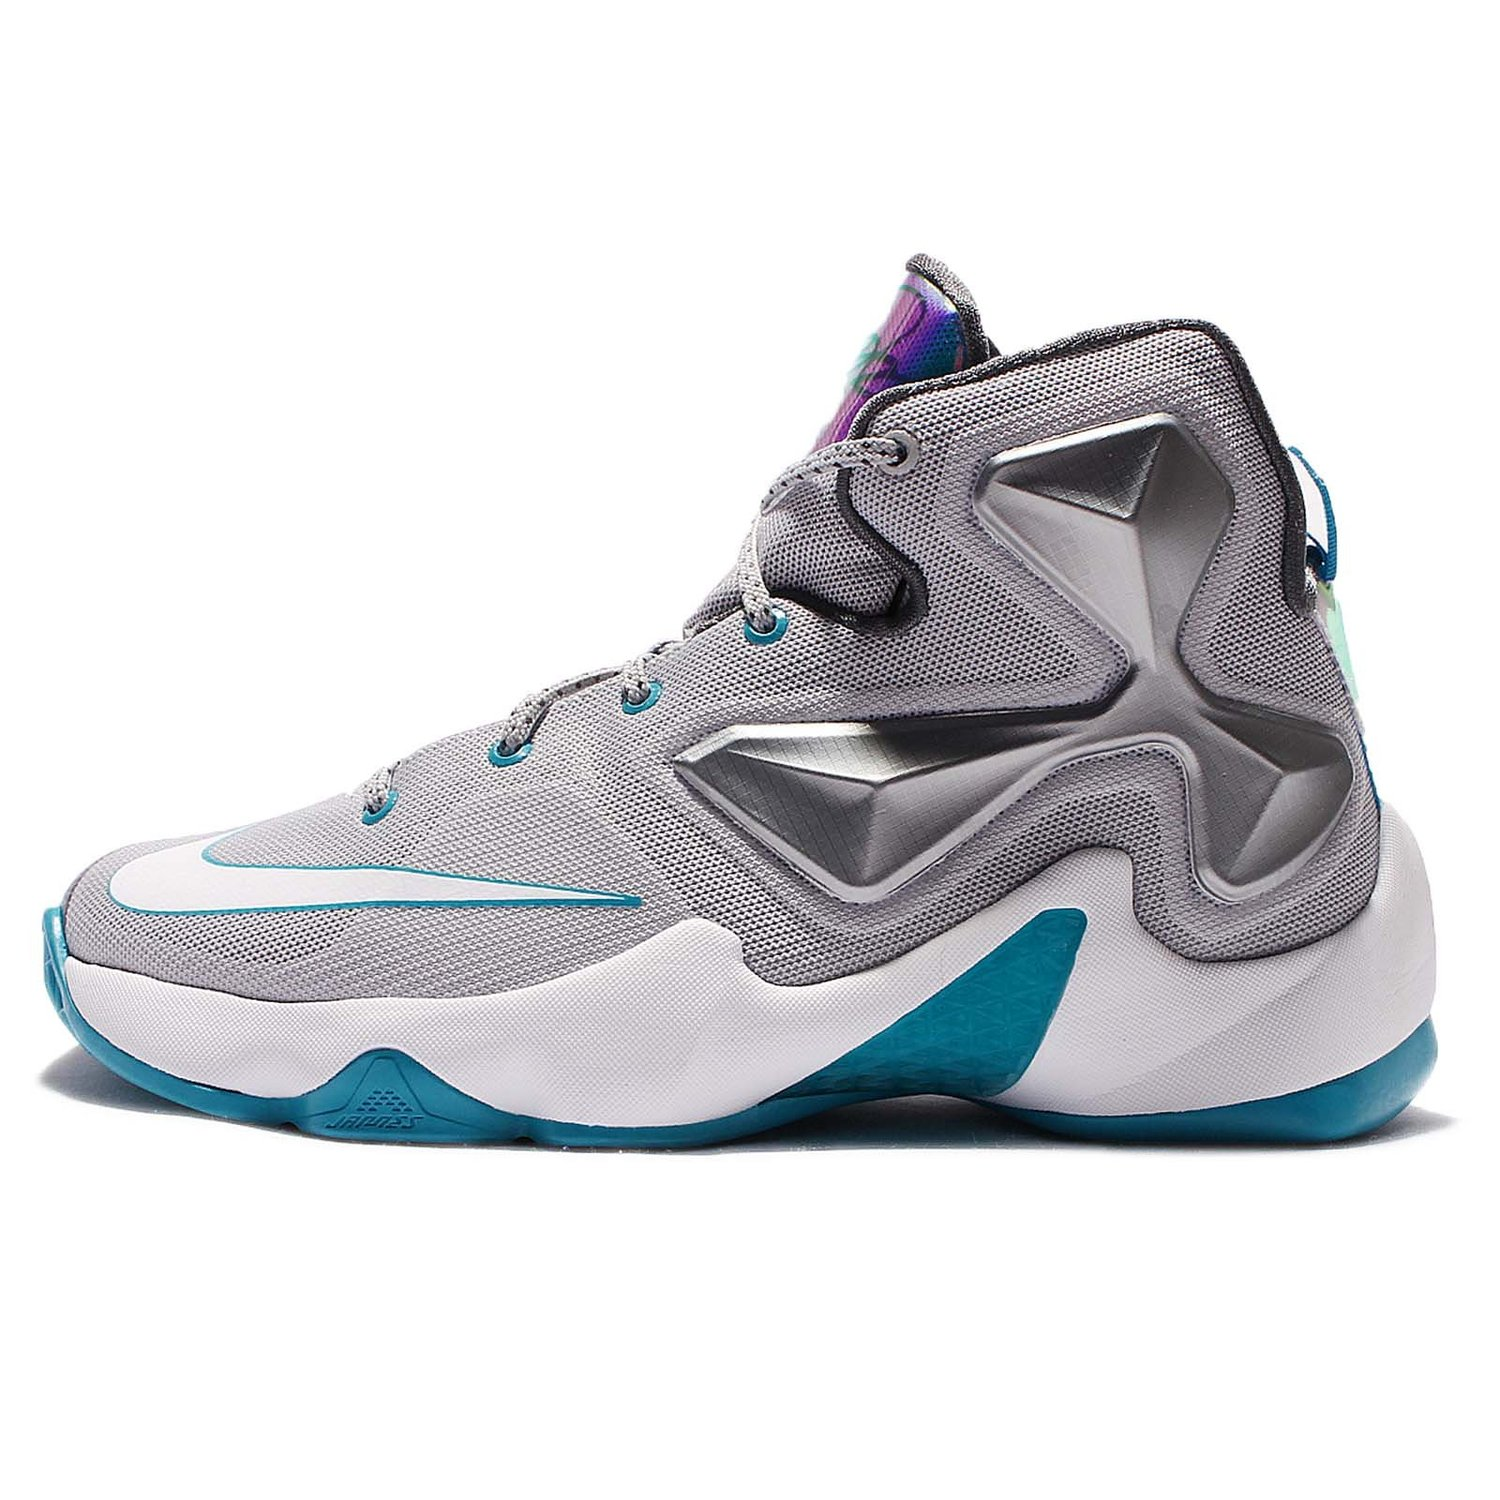 339ffc4e59f Get Quotations · Nike Kid s Lebron XIII GS